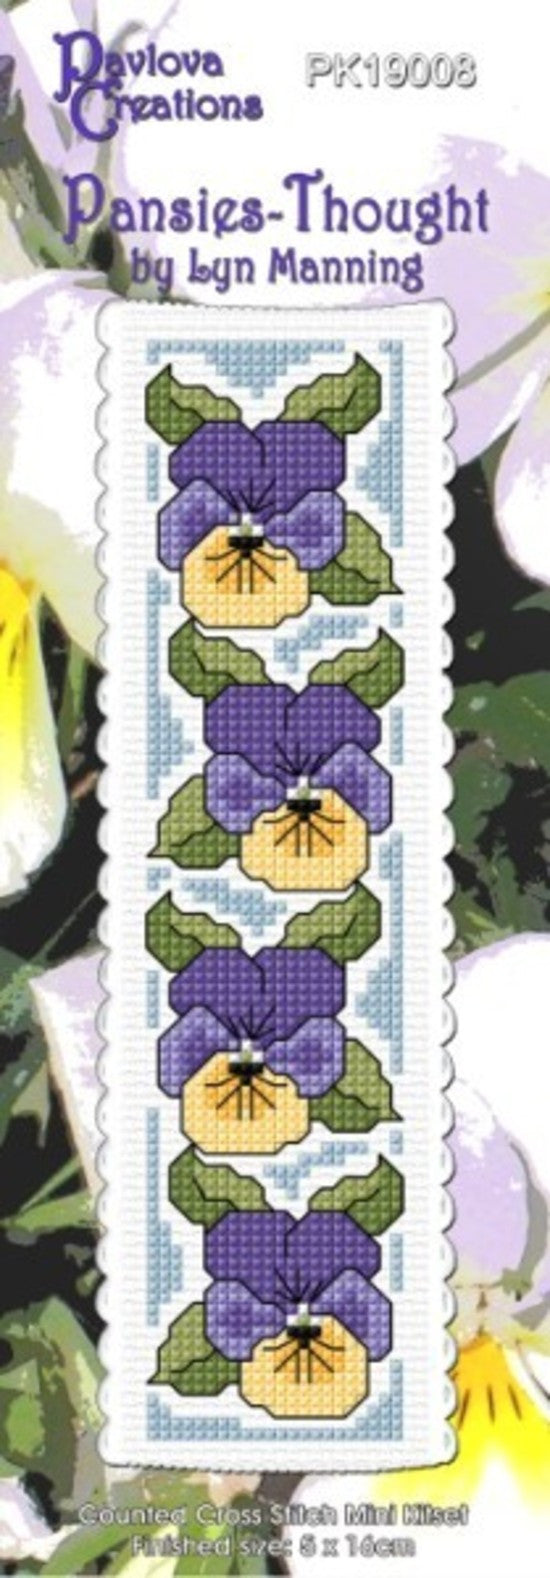 Cross-stitch bookmark - Pansies - Thought